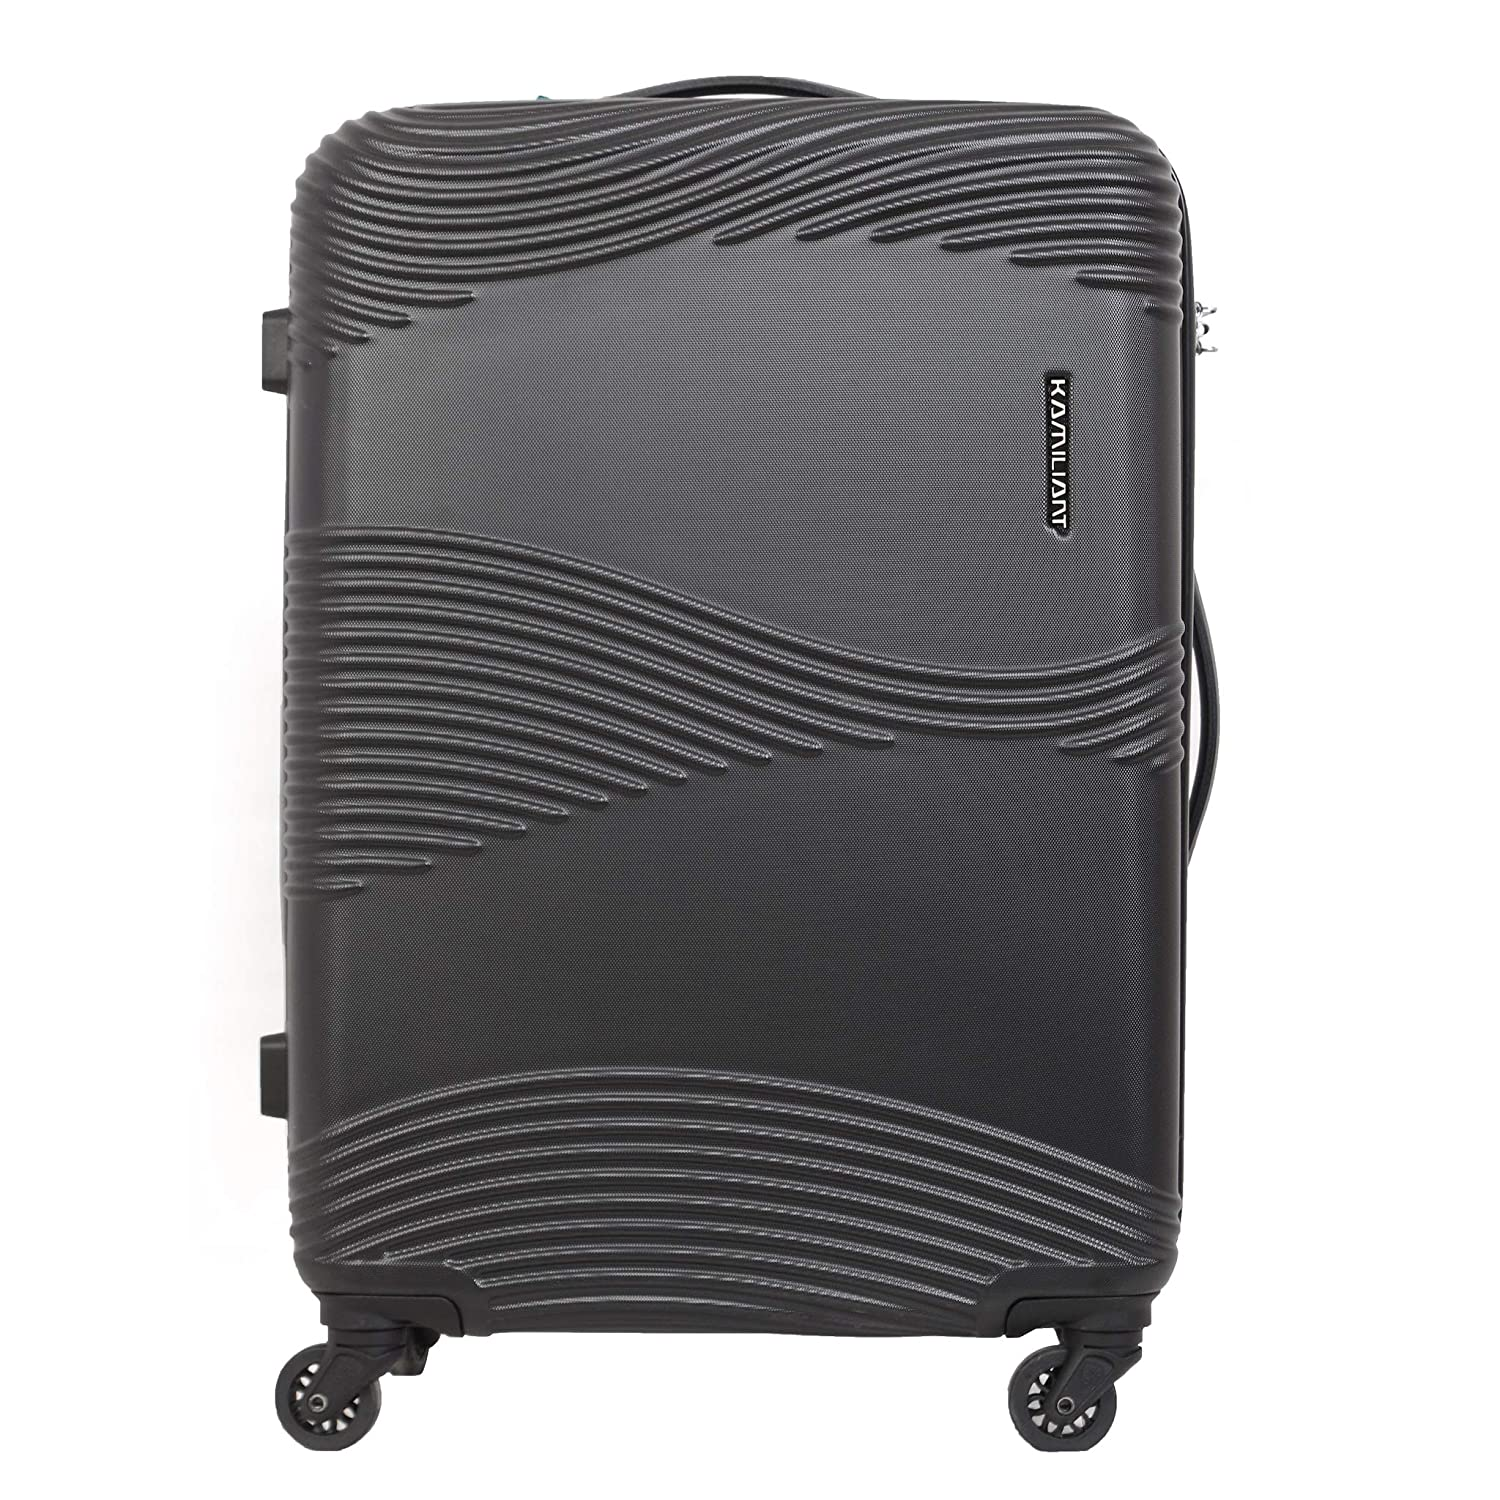 Kamiliant Kam Teku ABS 68 cms Black Hardsided Check-in Luggage (KAM TEKU SP 68cm TSA - Black)